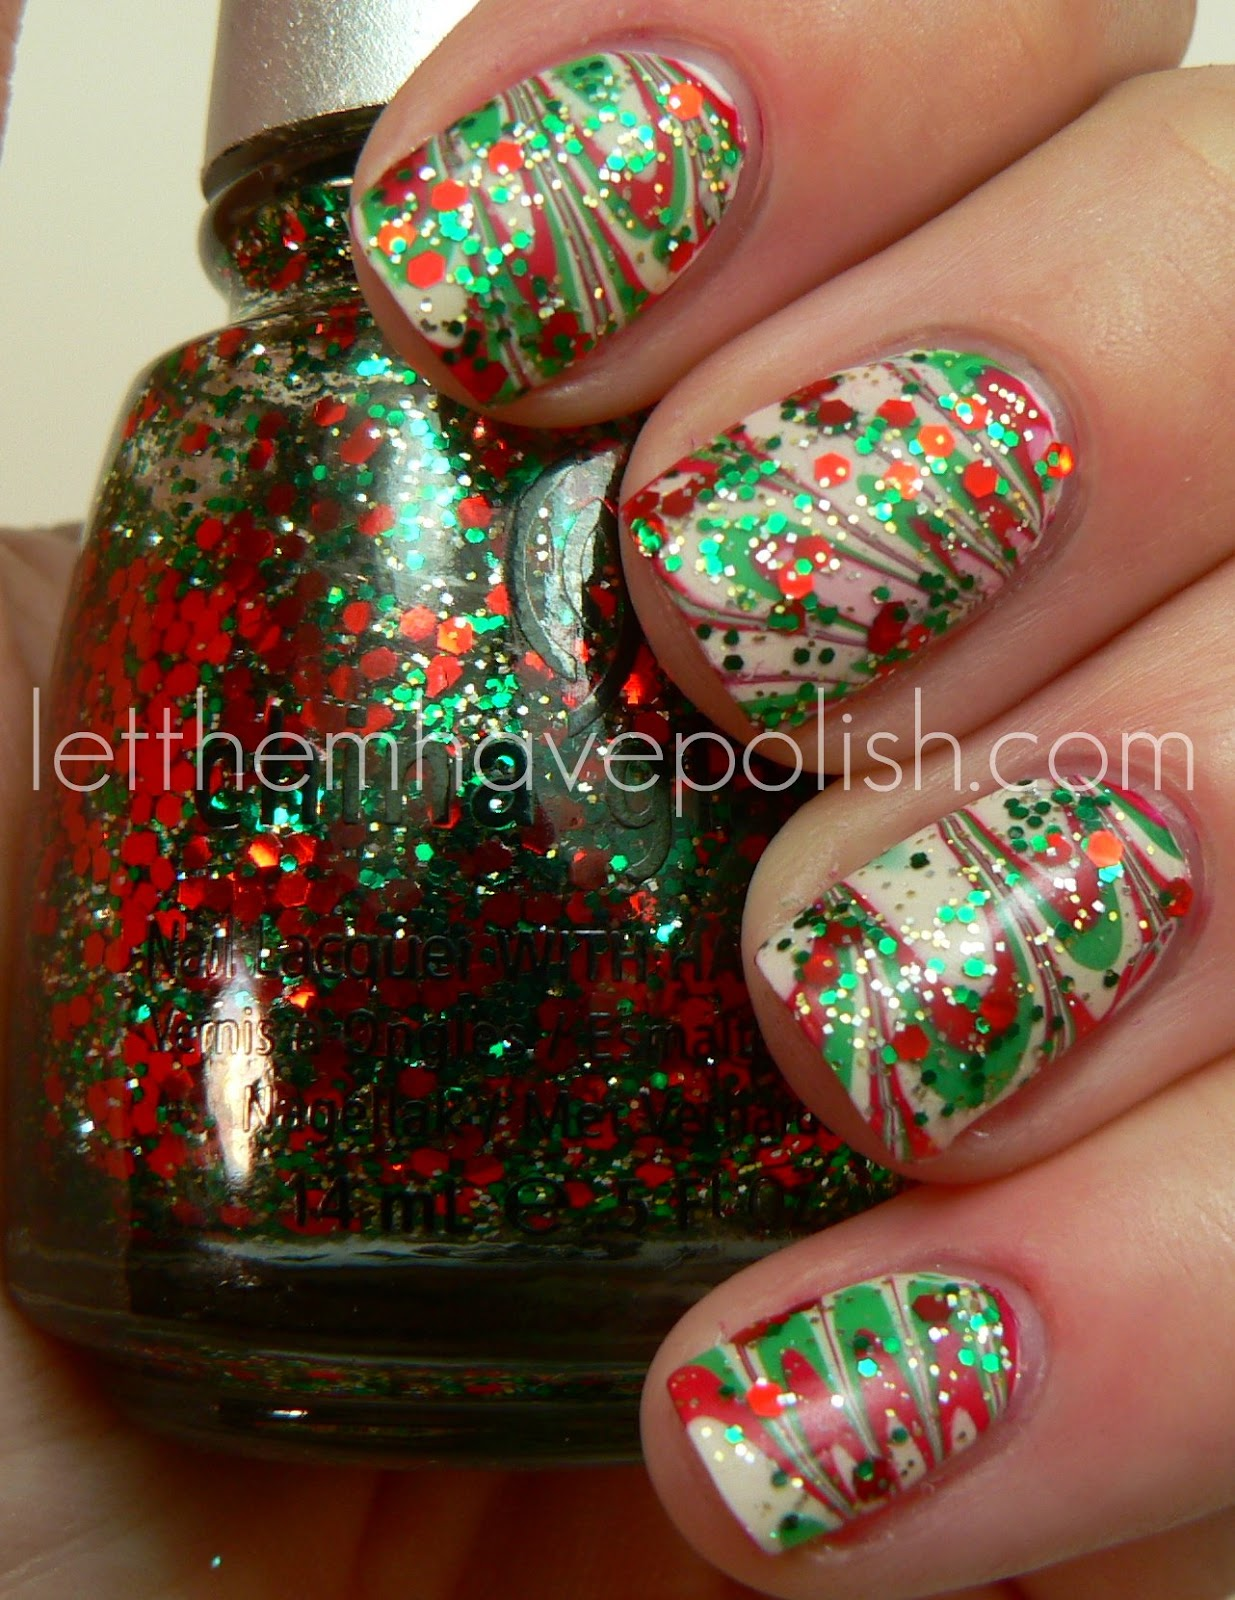 Let Them Have Polish!: Merry Christmas!!! Holiday